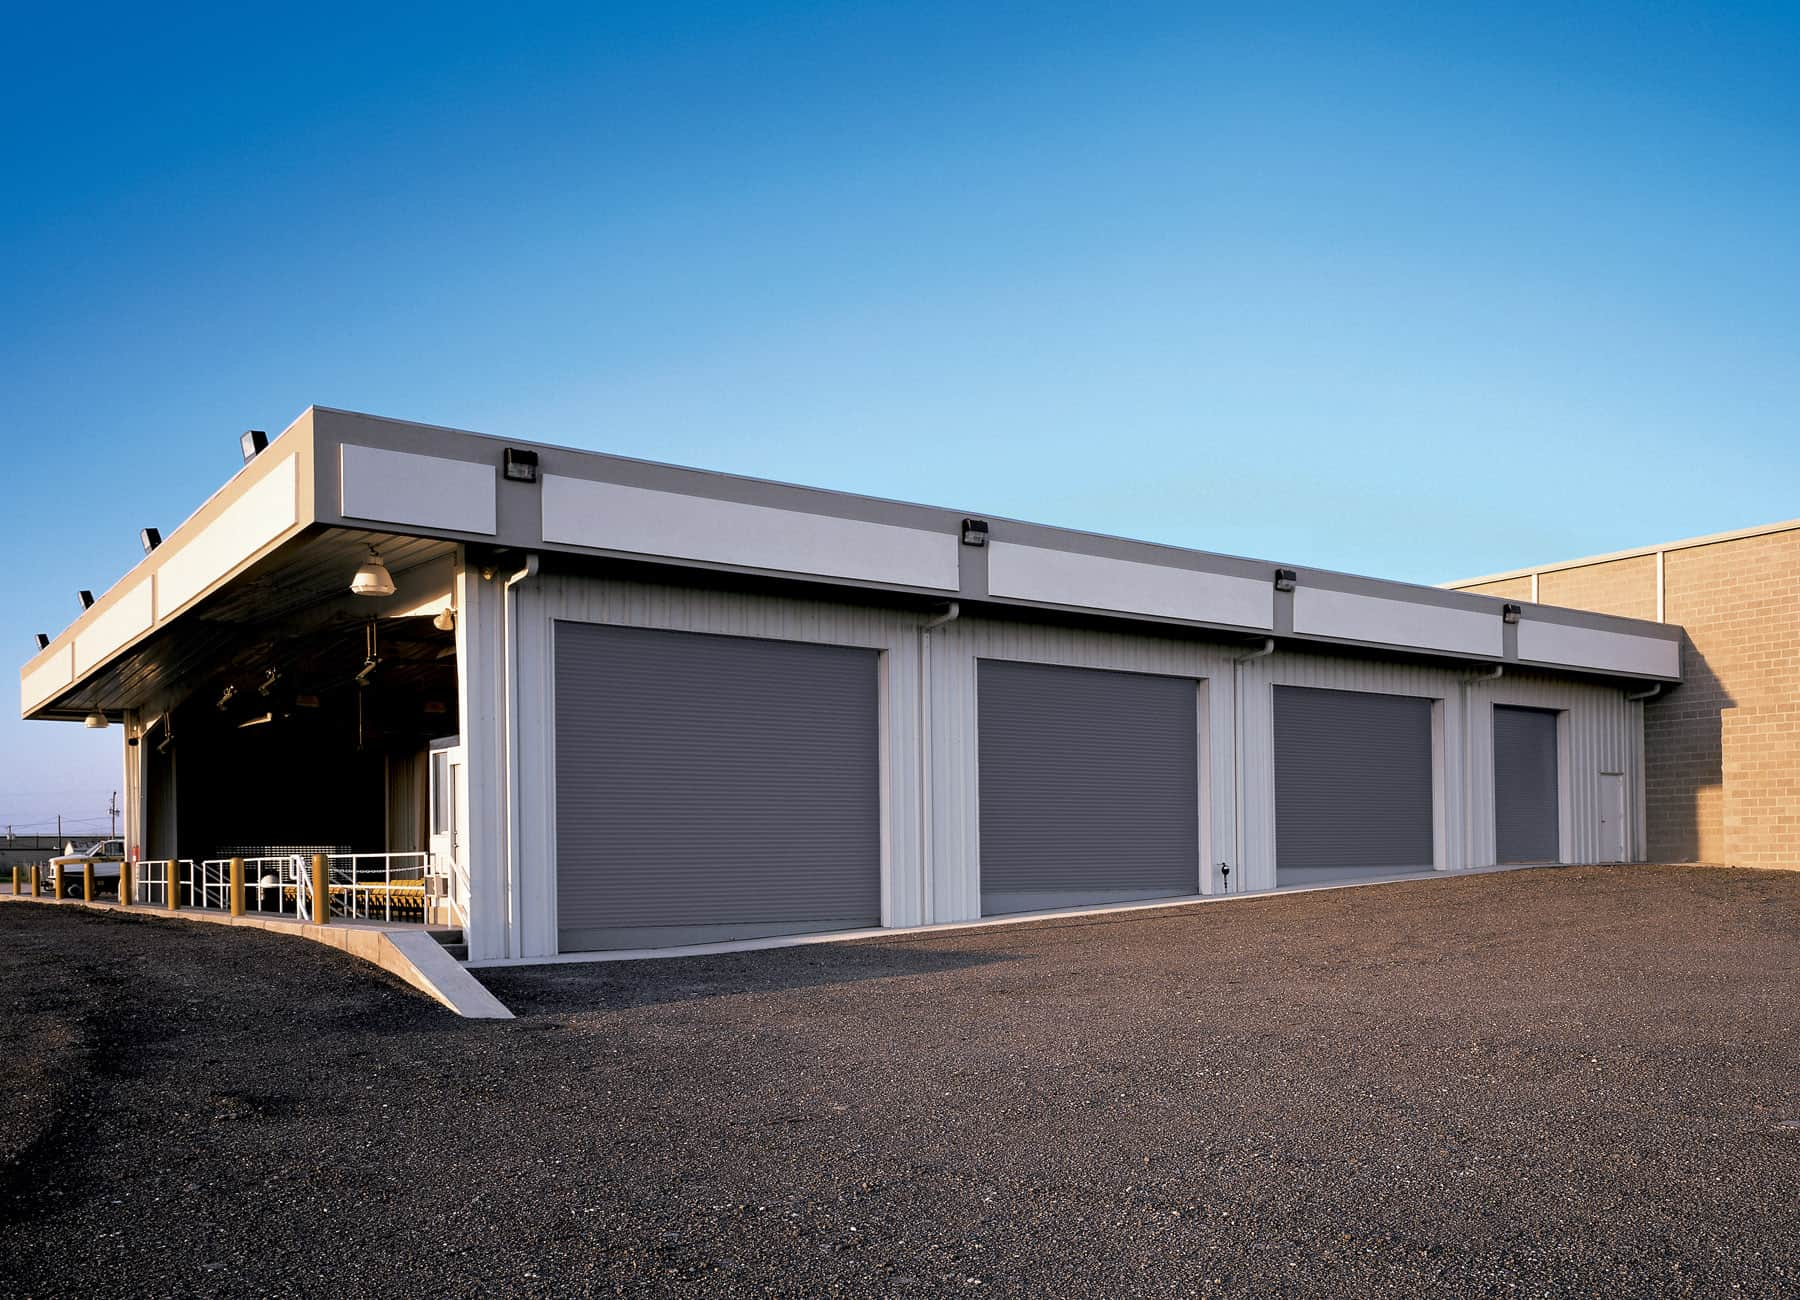 Commercial Garage Doors, Commercial Garage Doors, Overhead Door Company of Battle Creek & Jackson, Overhead Door Company of Battle Creek & Jackson